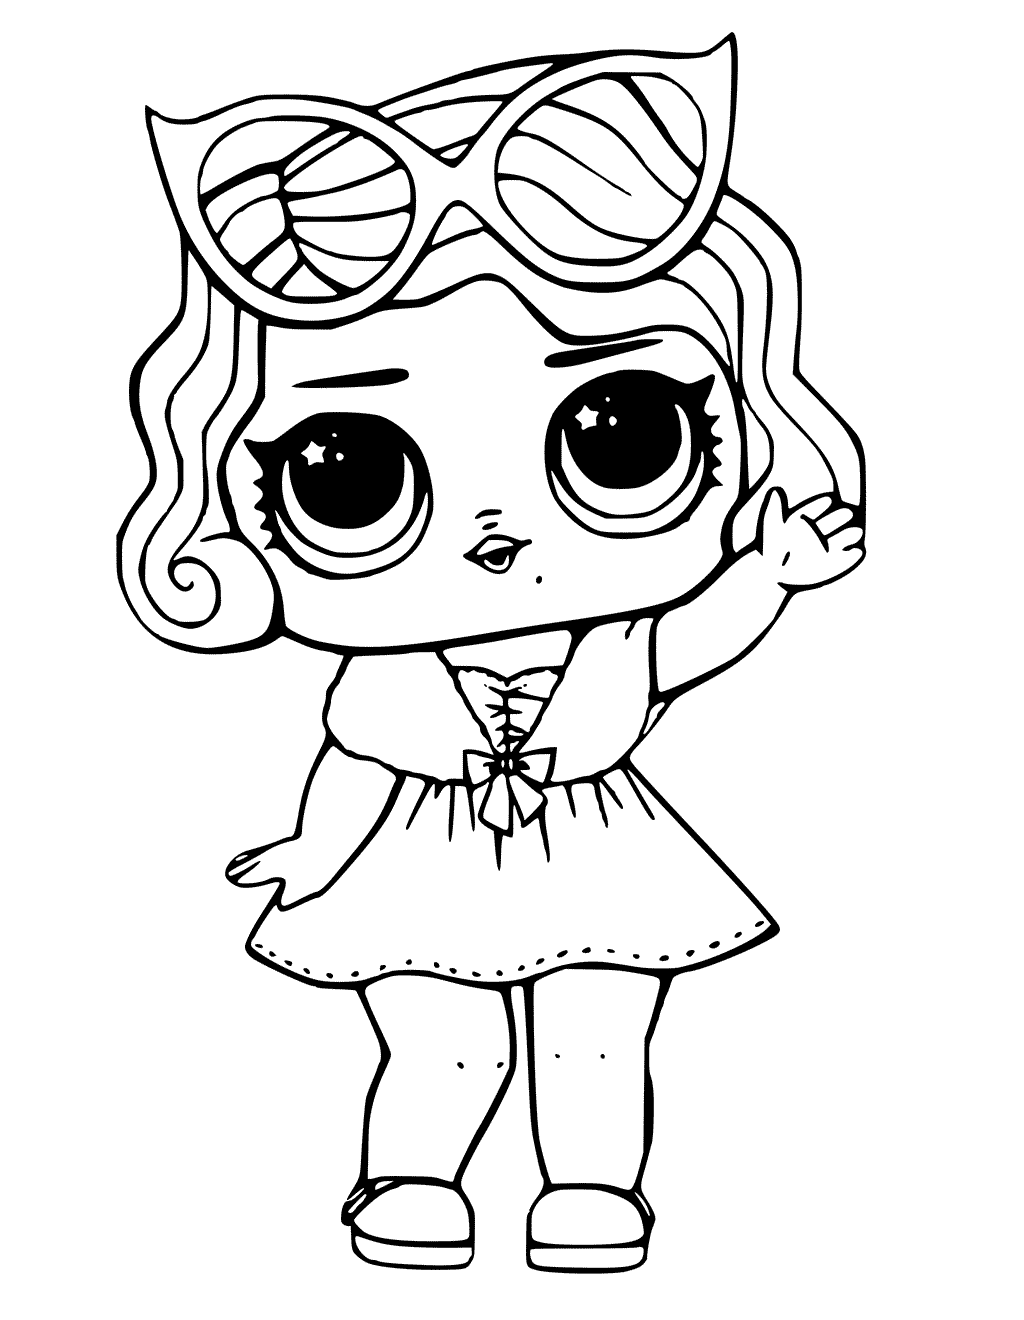 doll coloring page dolls coloring pages coloring doll page